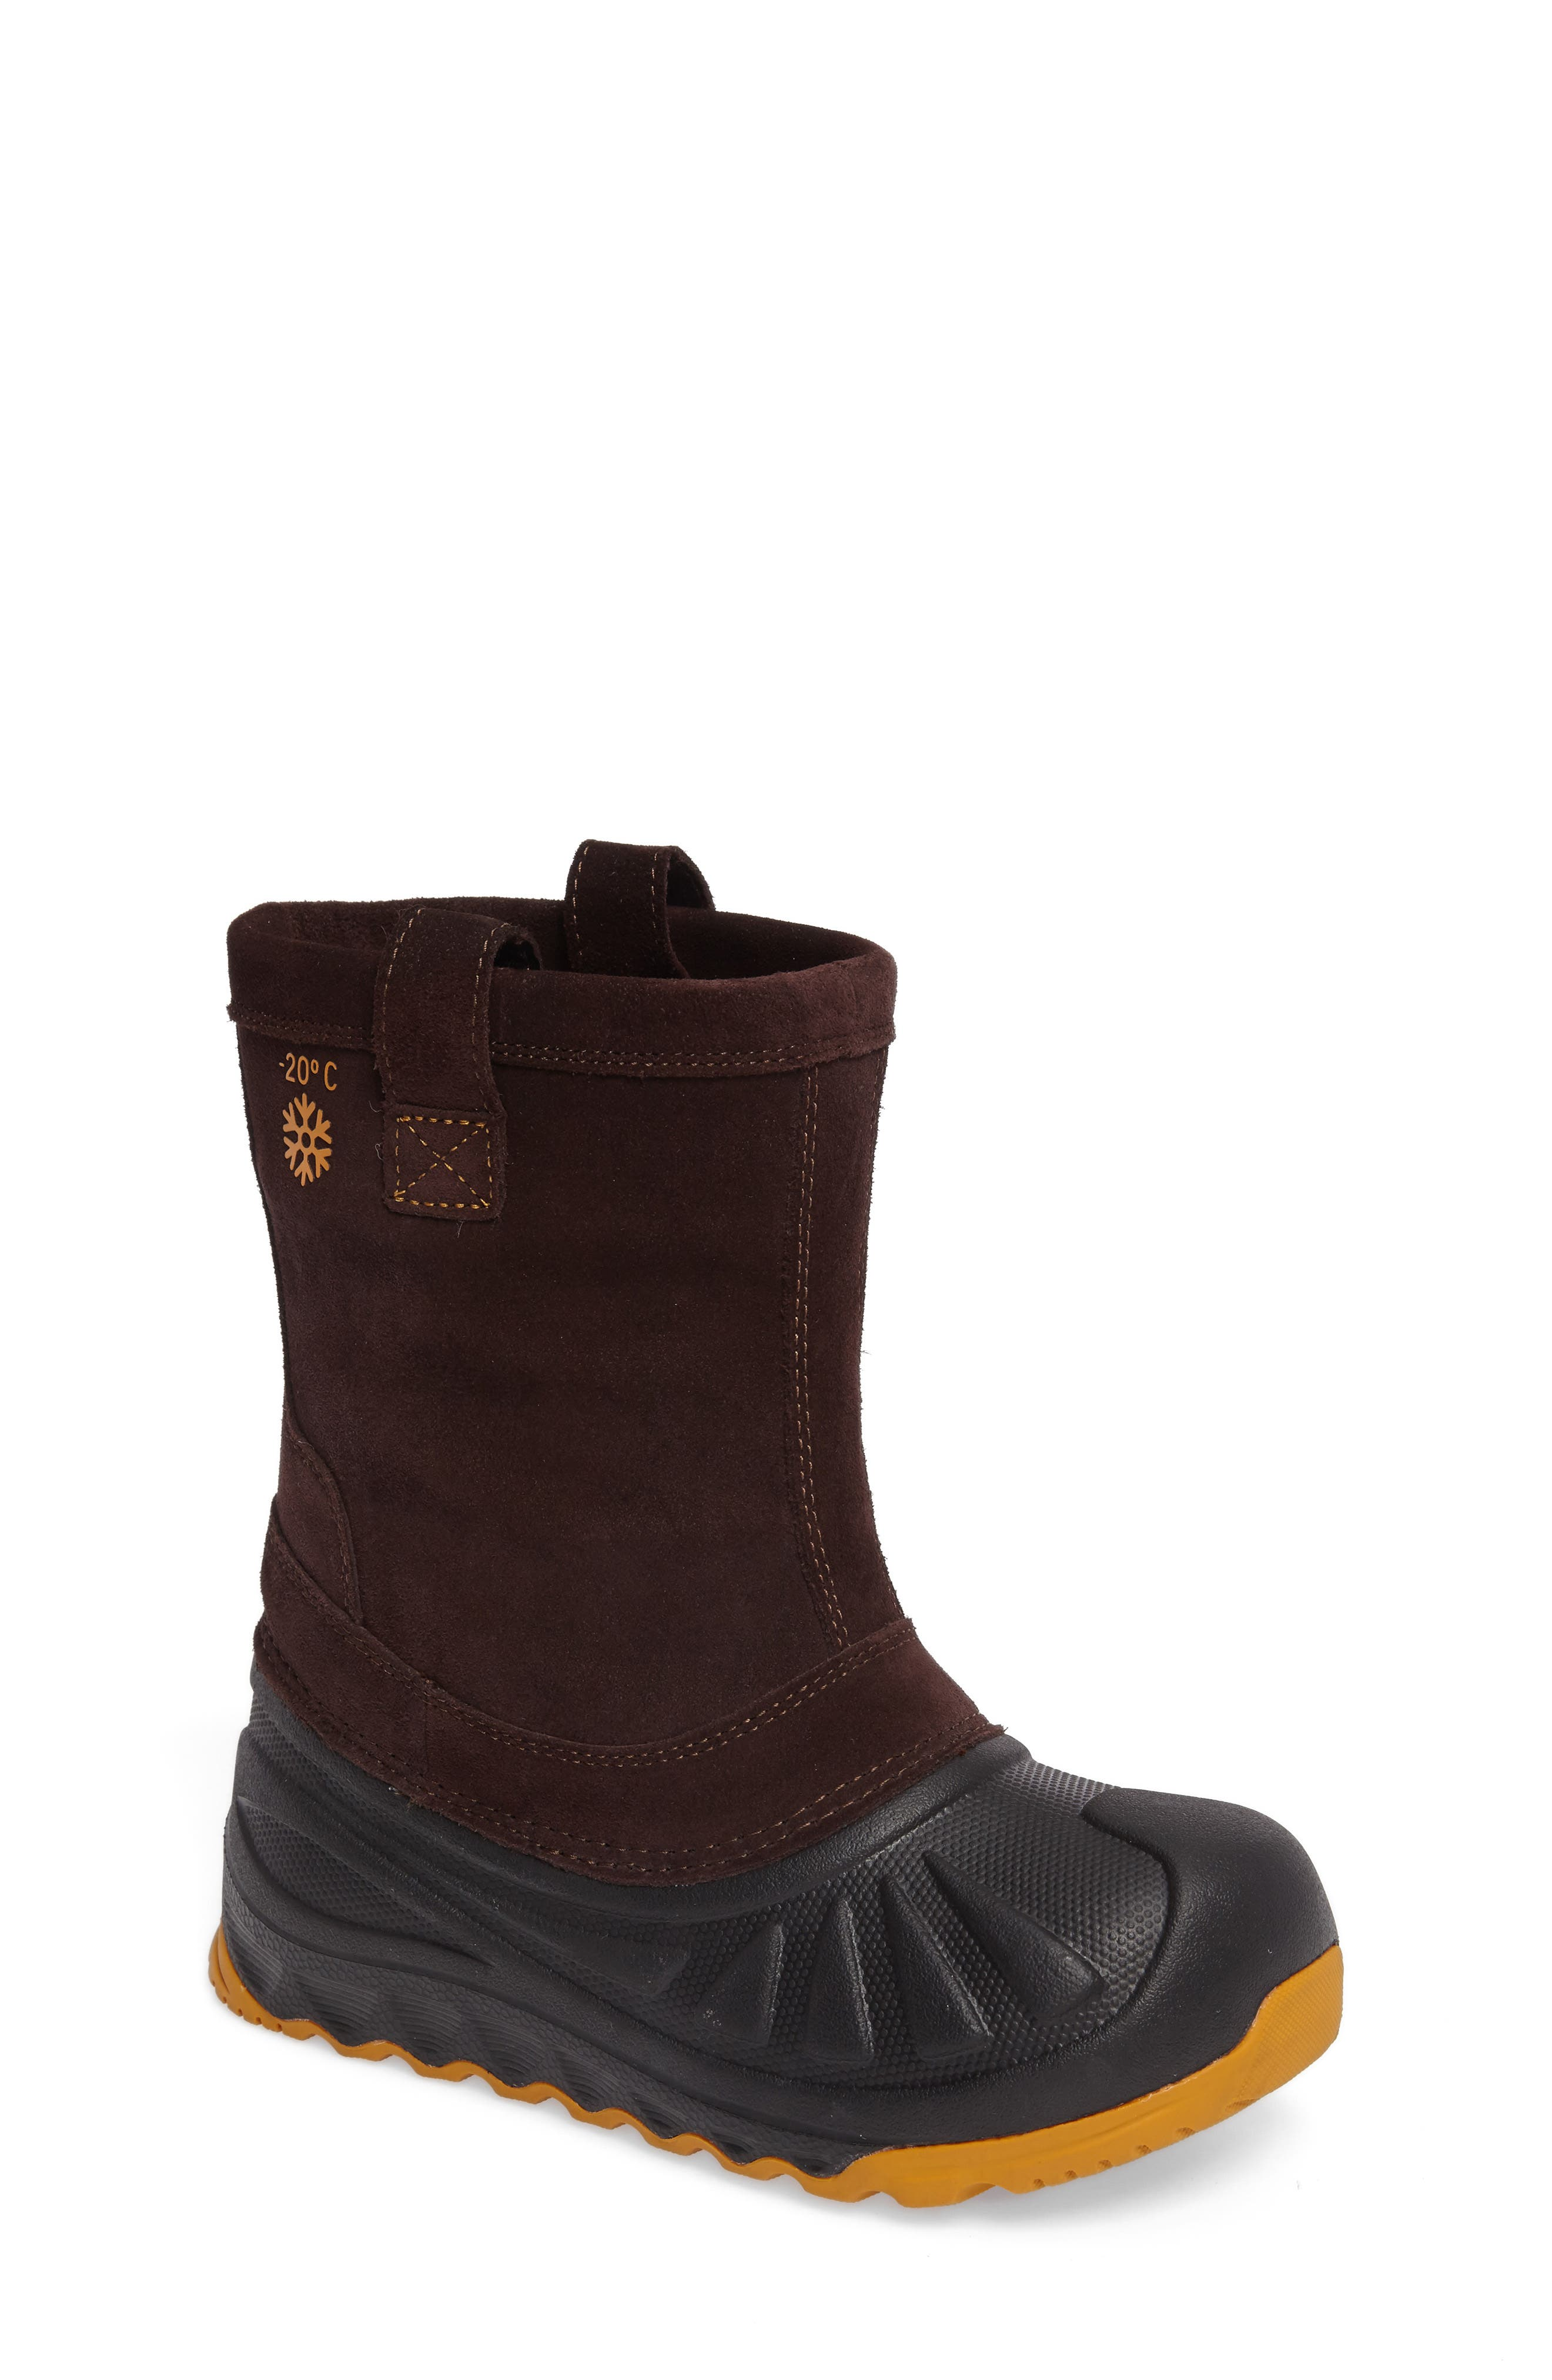 Evertt Waterproof Thinsulate<sup>™</sup> Insulated Snow Boot,                             Main thumbnail 1, color,